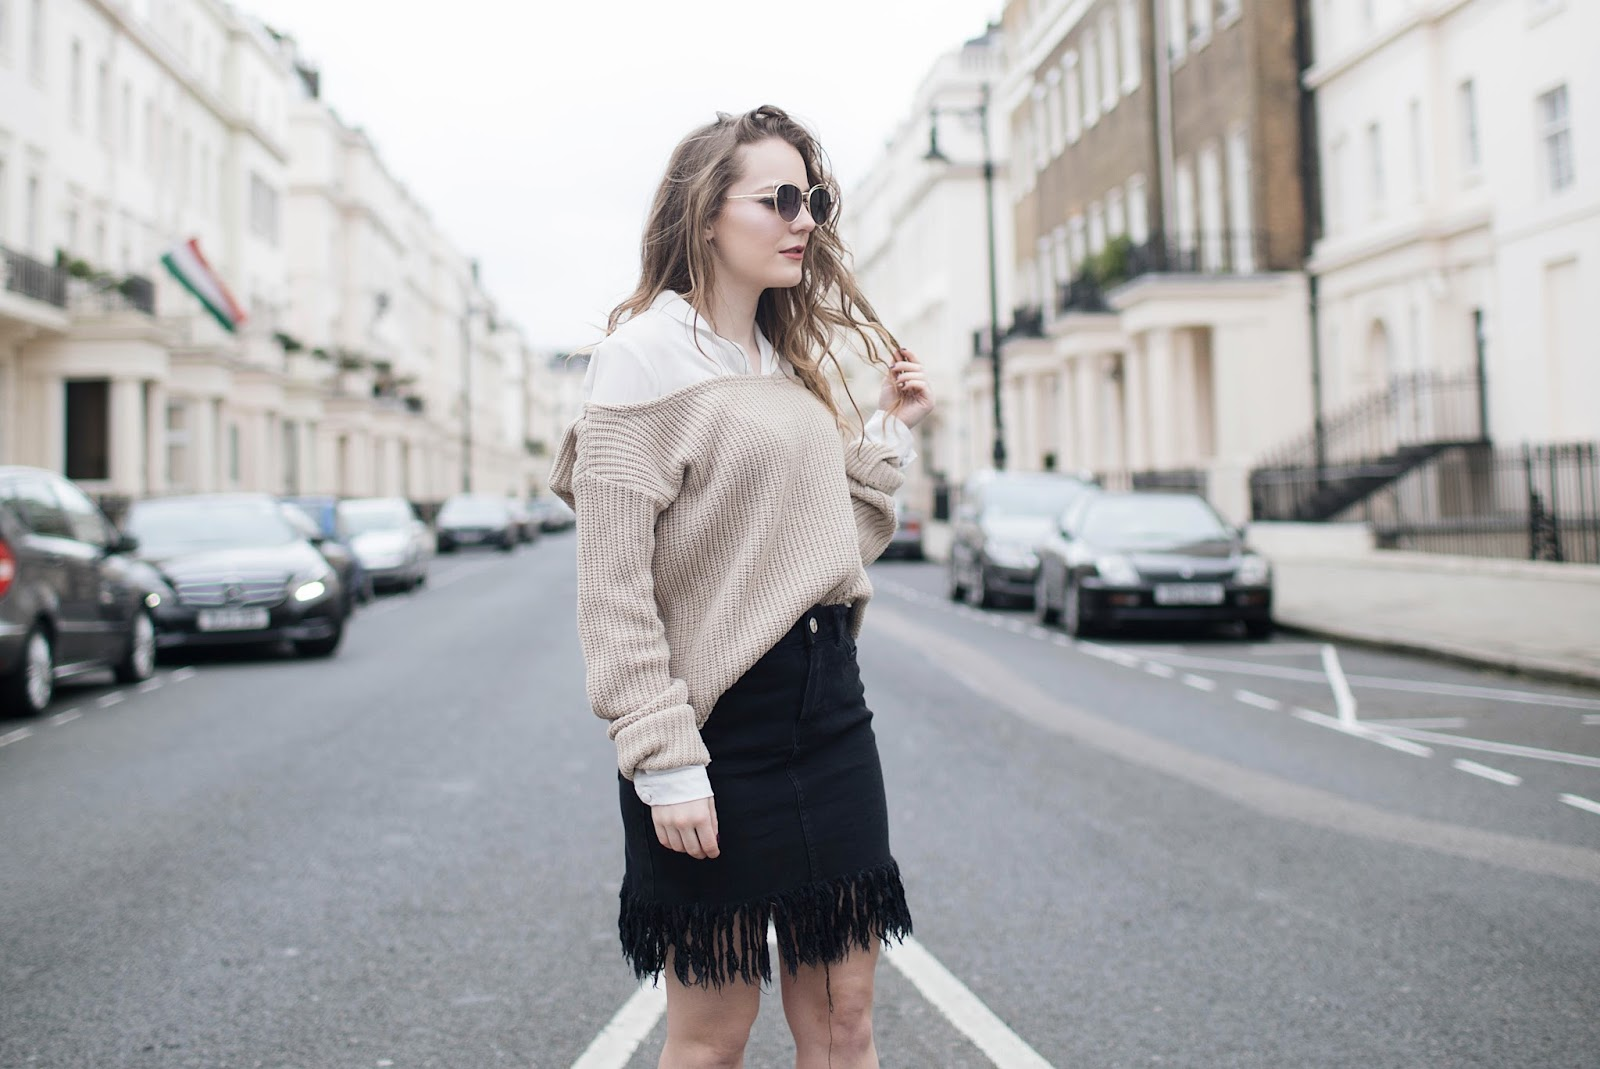 according to plan, nothing ever goes as planned, nothing goes as planned everything will break, all according to plan, when things don't go as planned, fashion blogger london, london based fashion blogger, london based style blogger, uk based style blogger, fringed skirt,